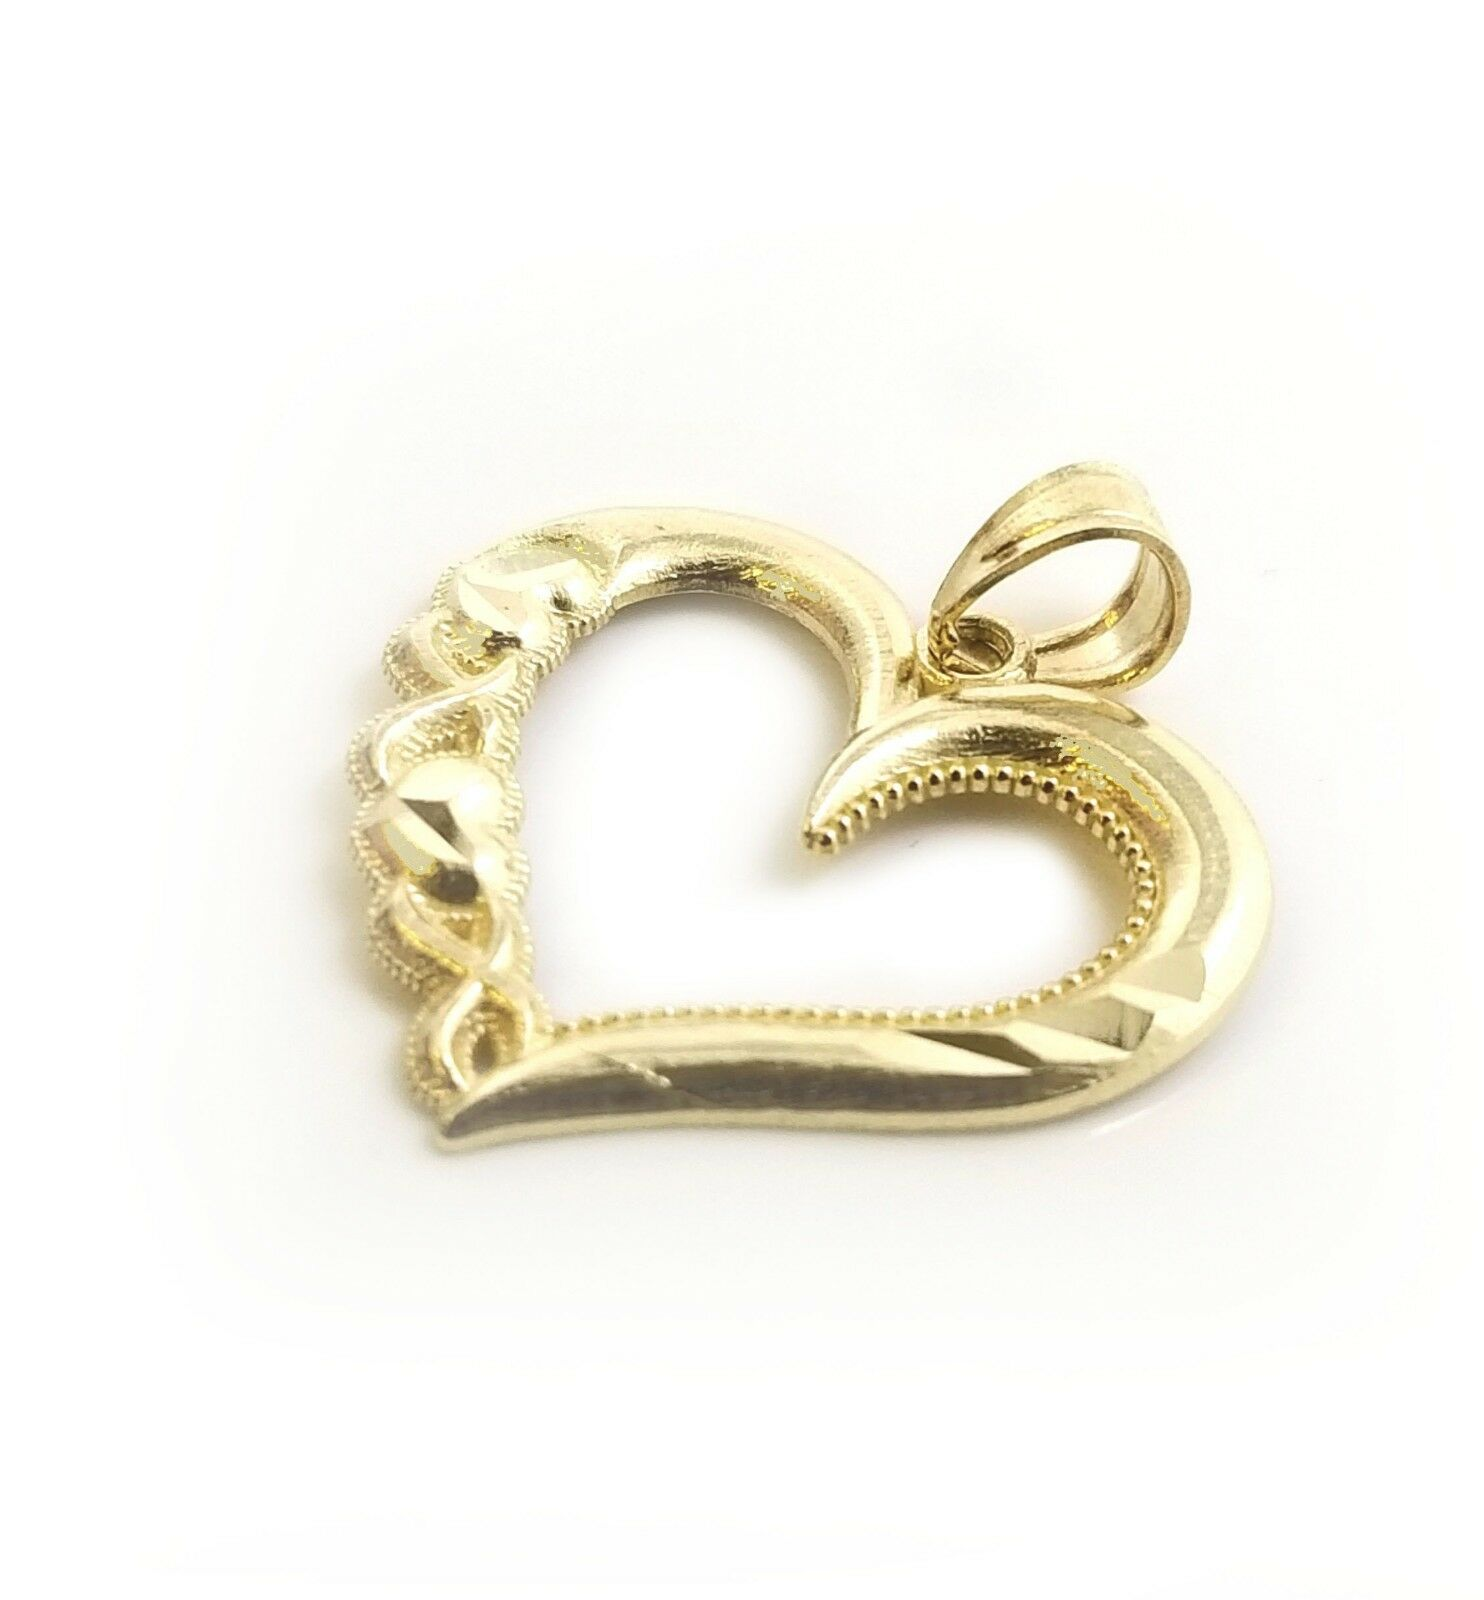 Real 10k Yellow gold Singapore Chain & 10k Yellow gold Heart Charm